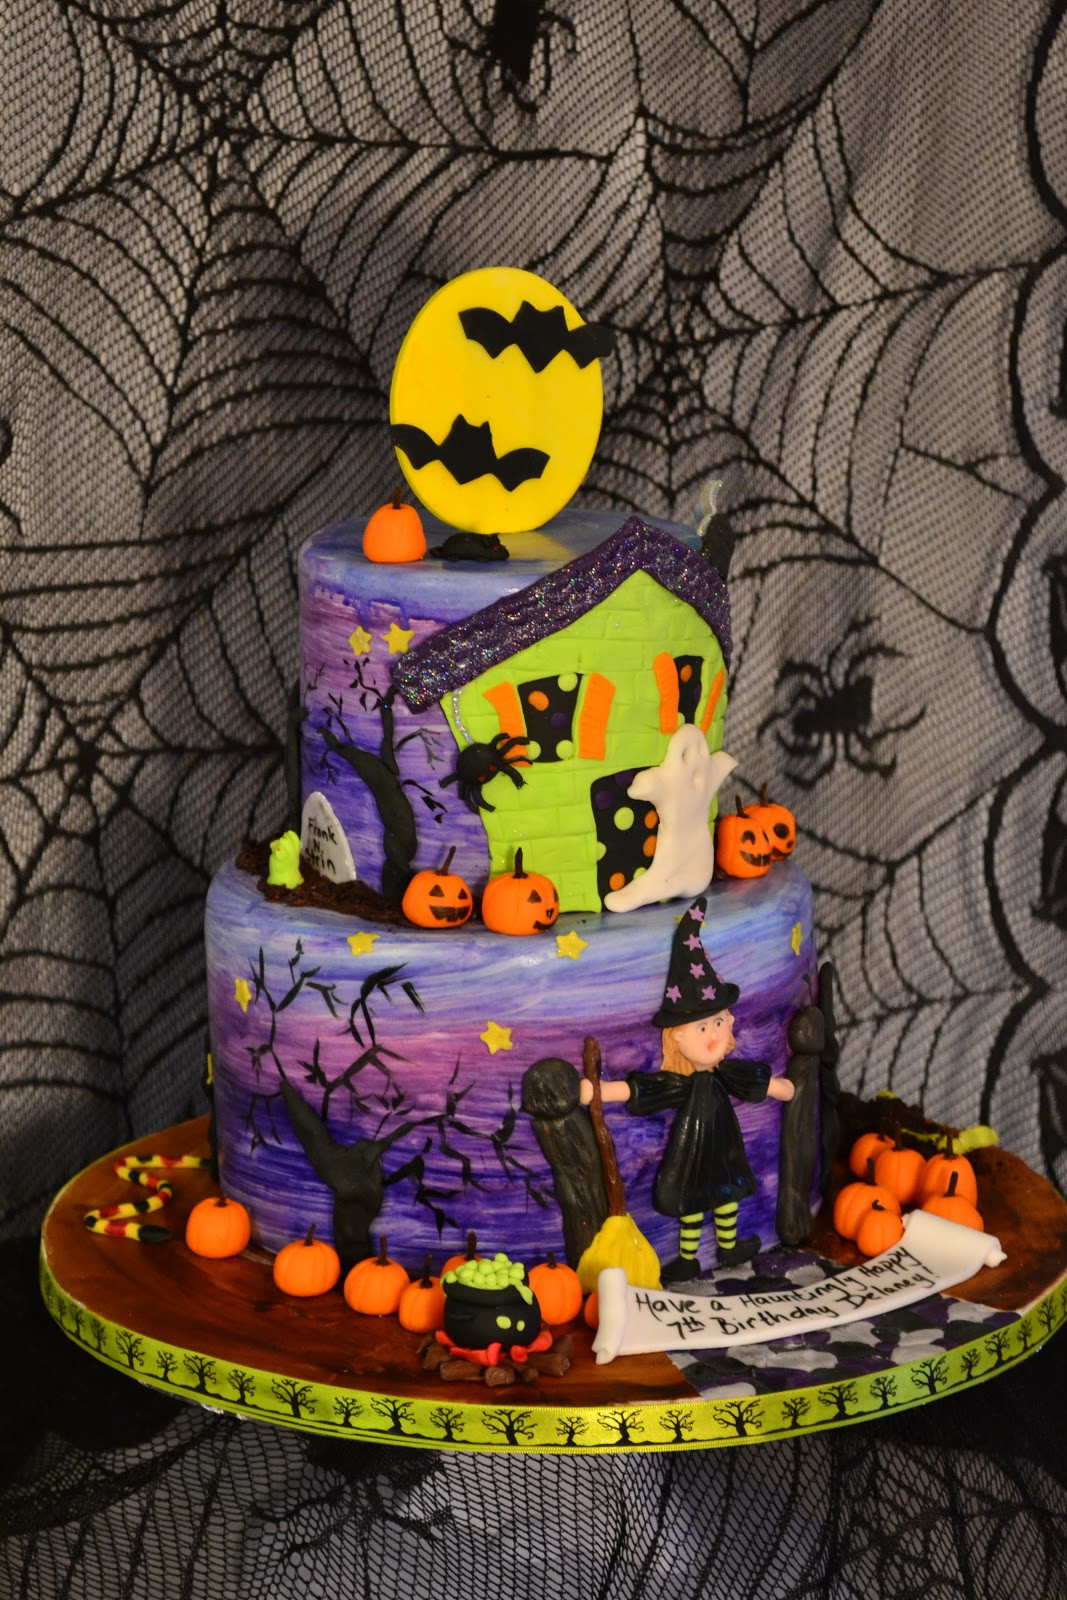 Halloween Birthday Cupcakes  Oh just put a cupcake in it Halloween birthday cake